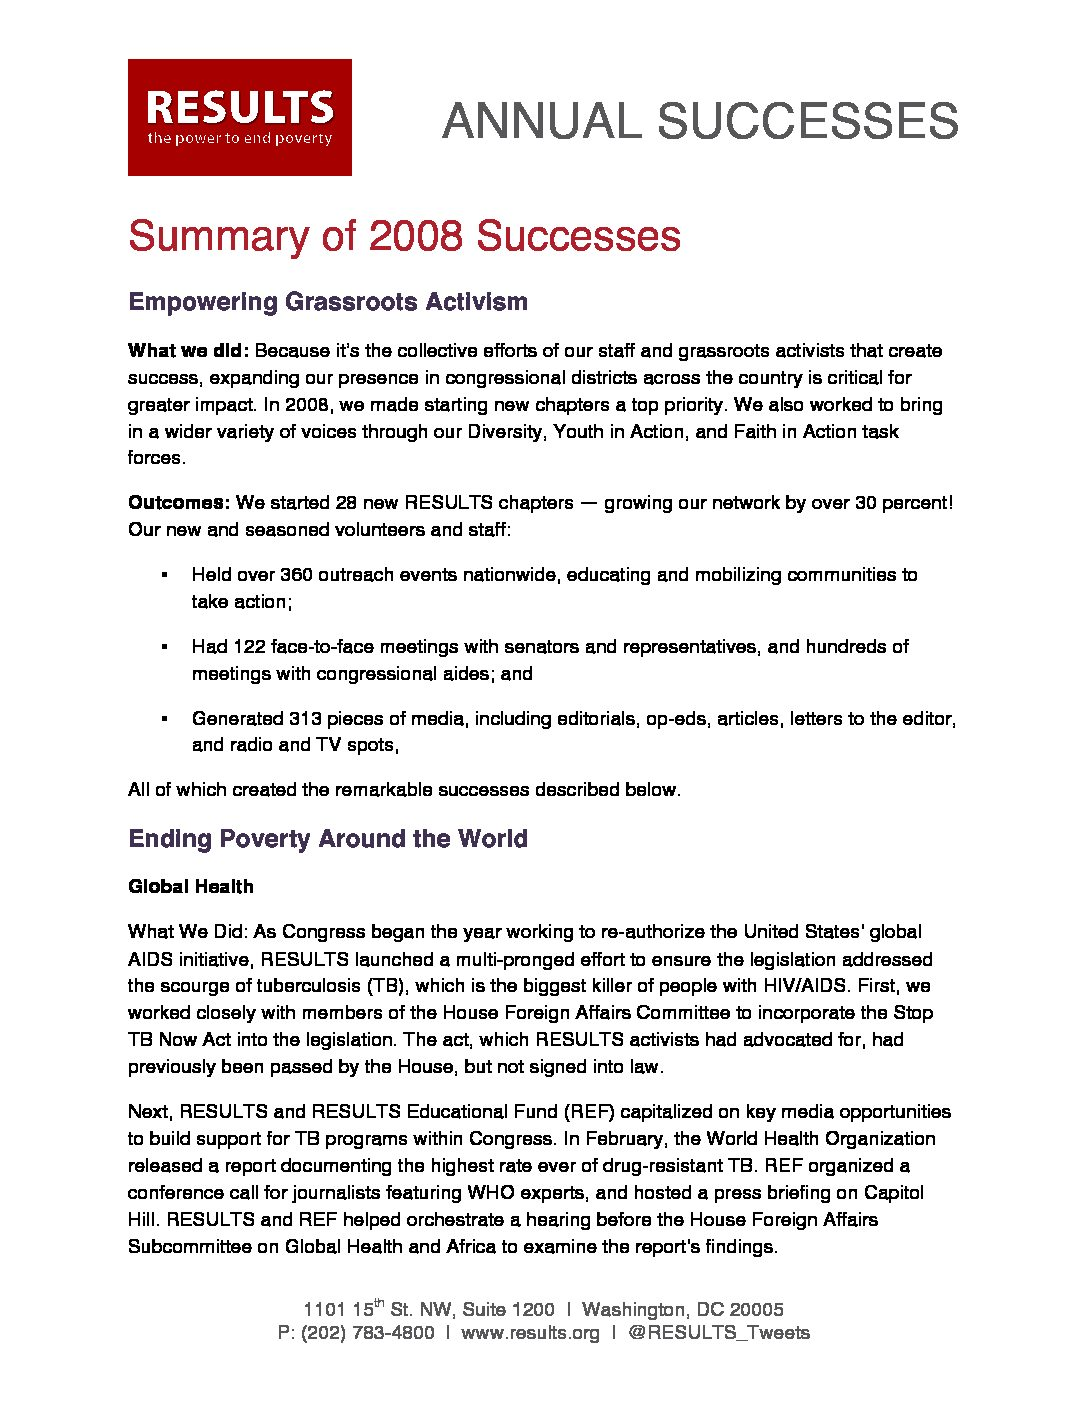 Annual Successes 2008